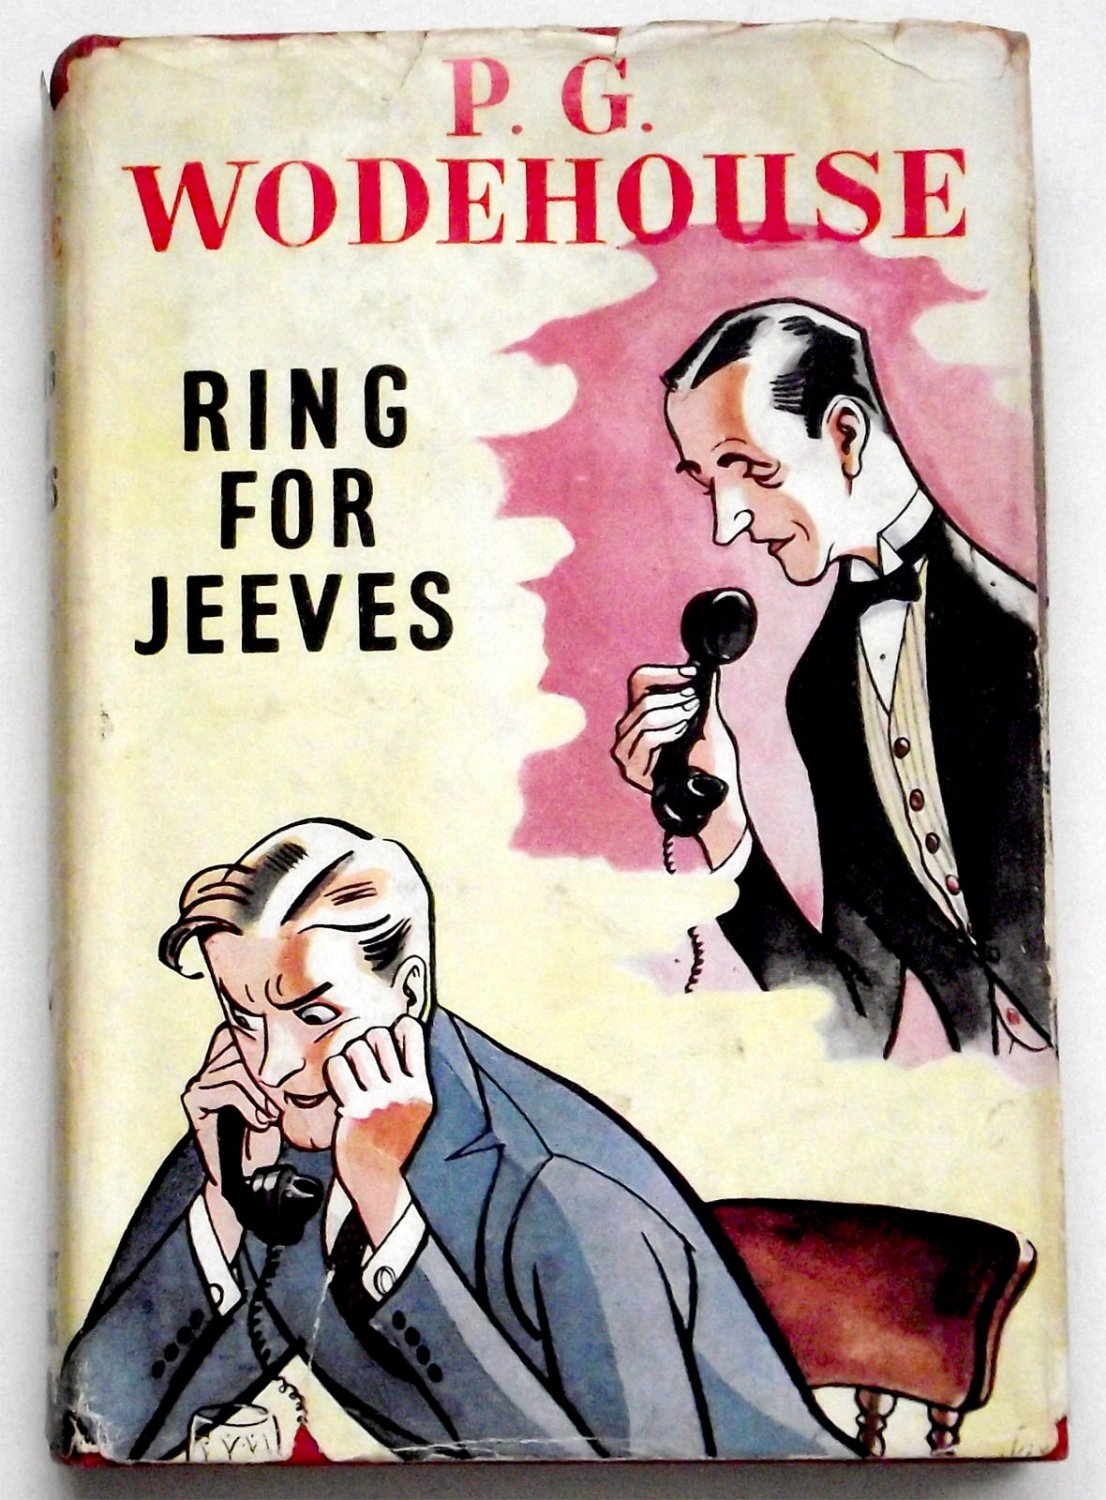 P.G. Wodehouse Ring For Jeeves First Edition with Dust Jacket 1953